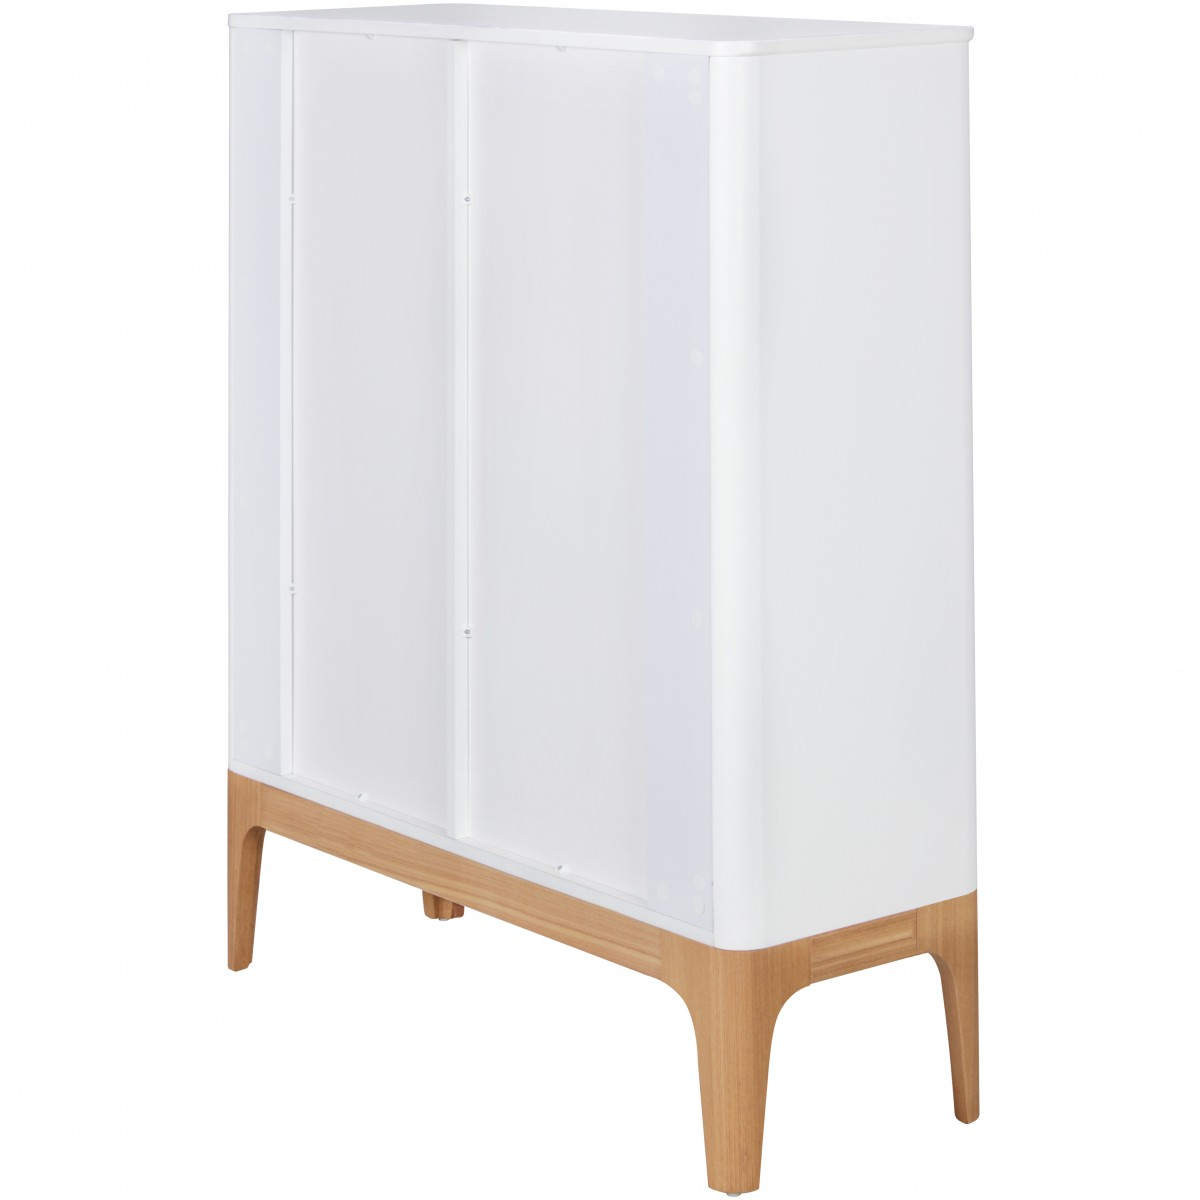 Finebuy design highboard scanio skandinavisch wei mdf for Kommode 140 x 100